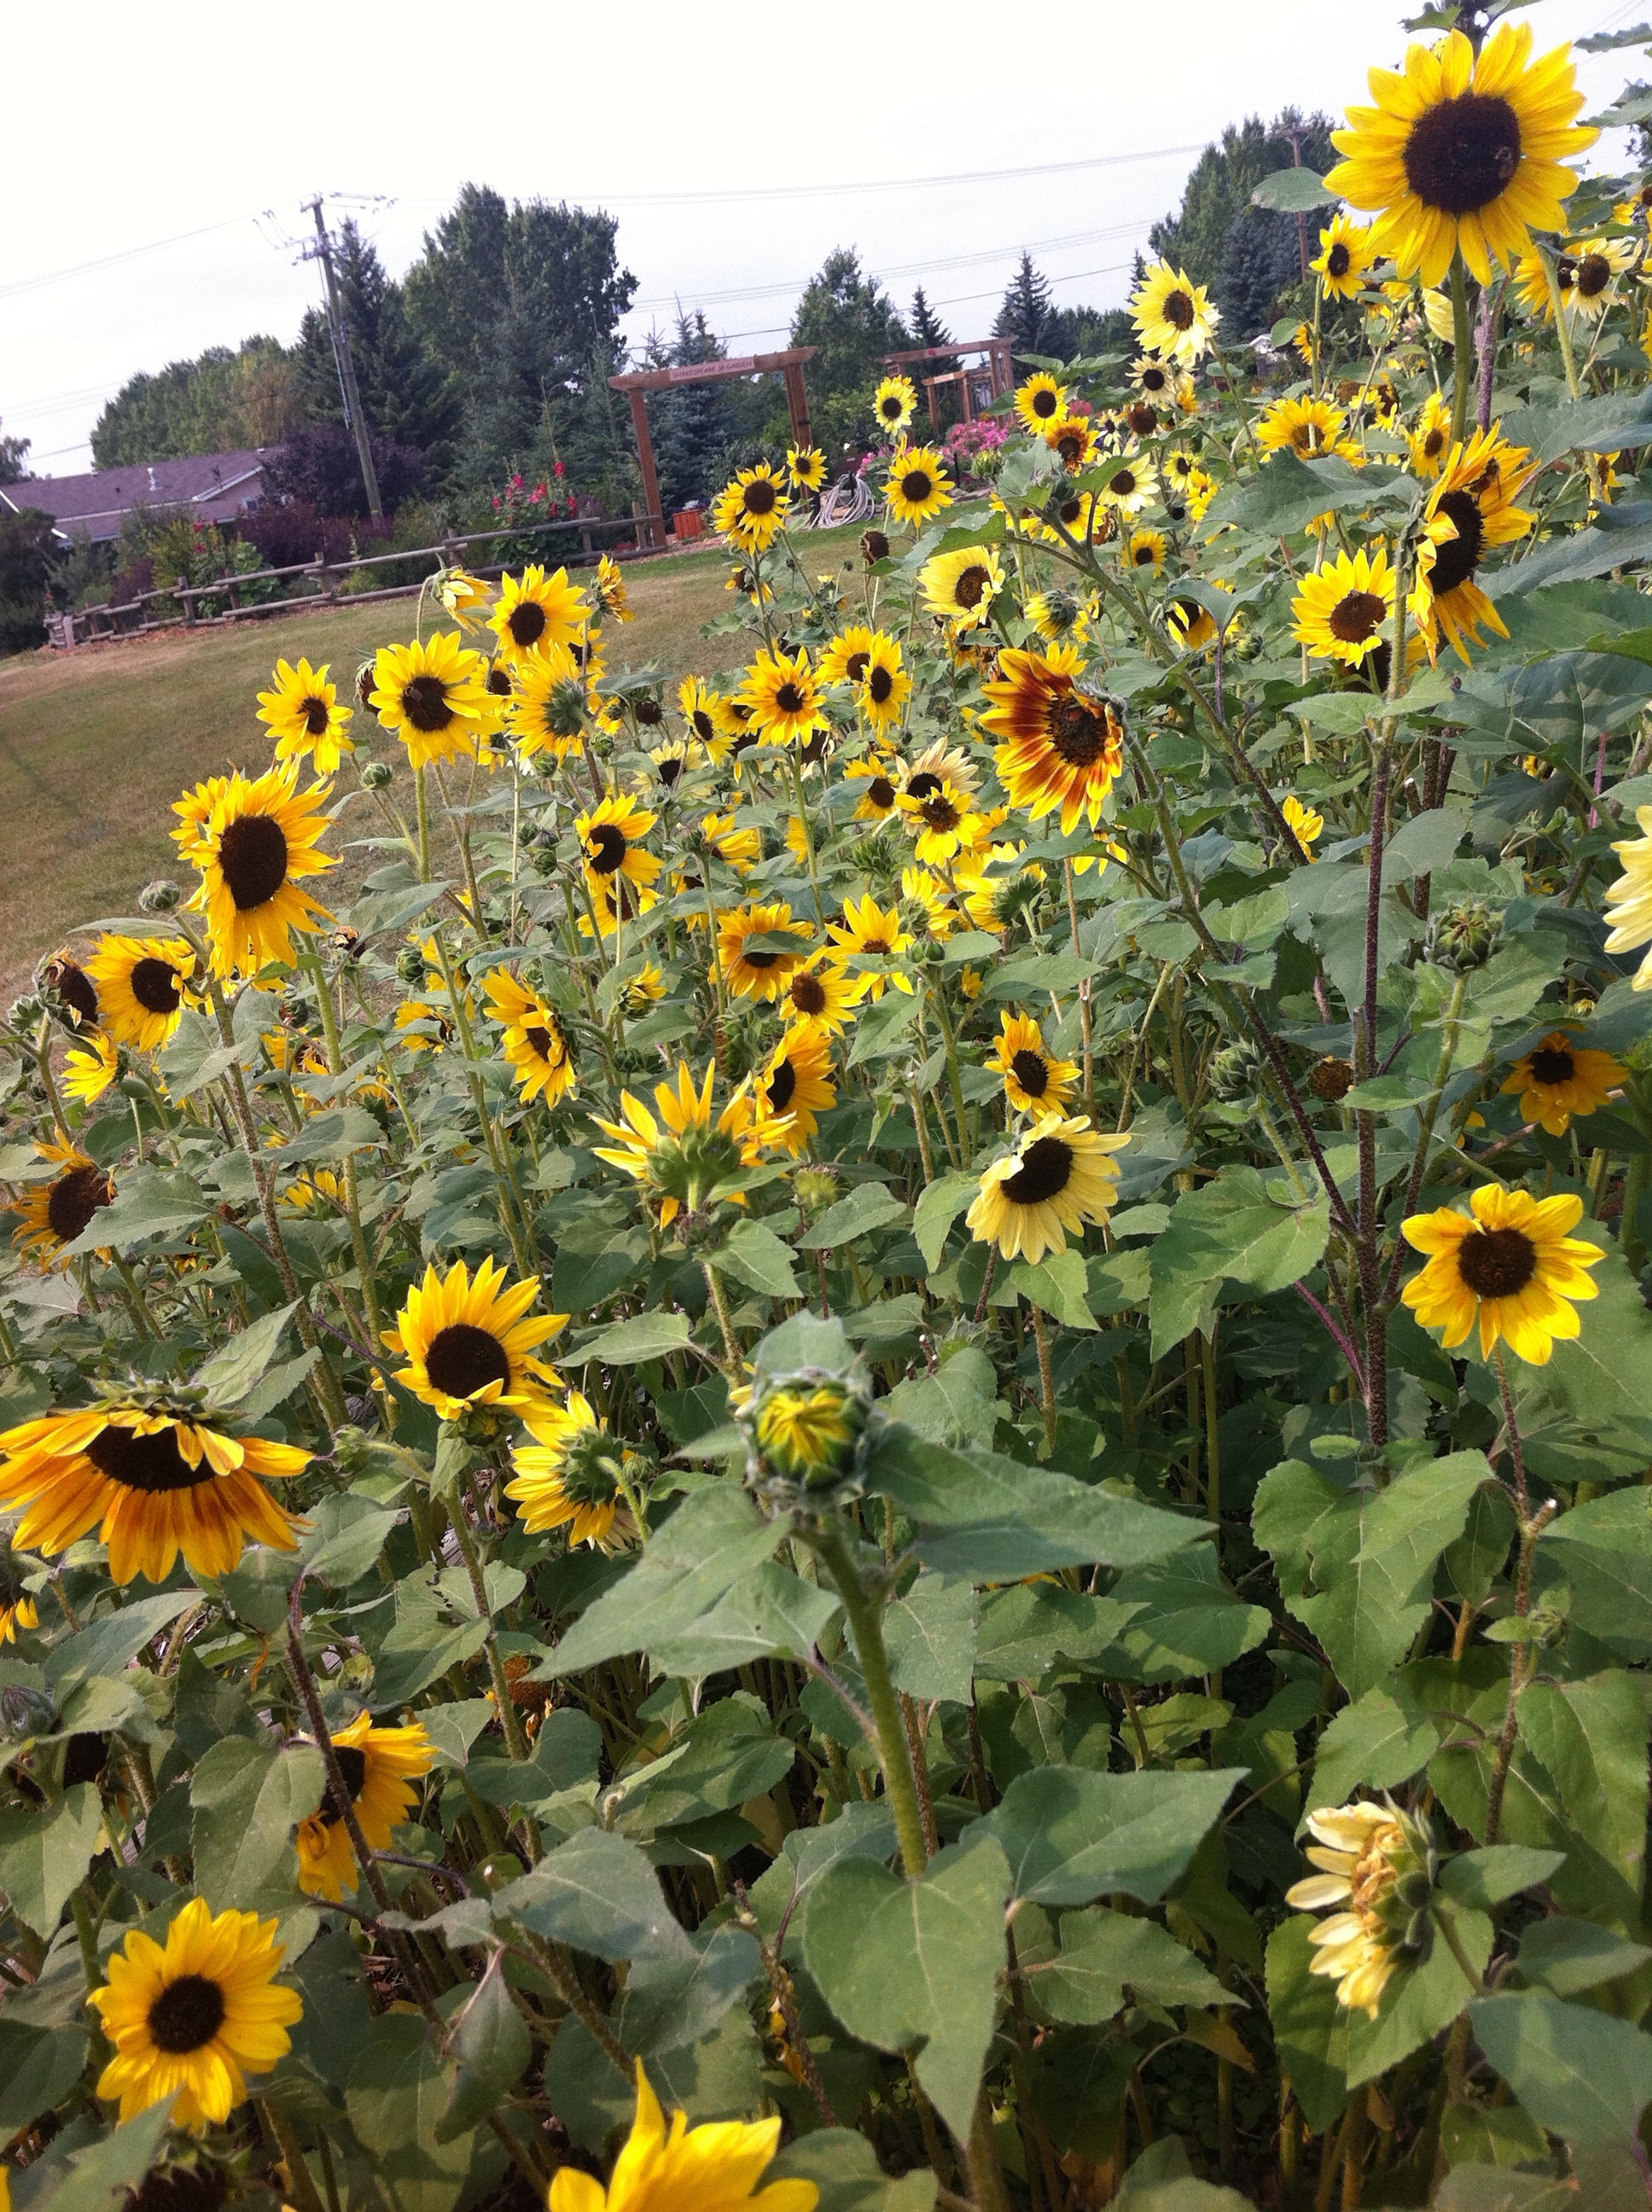 The Sunflower garden.